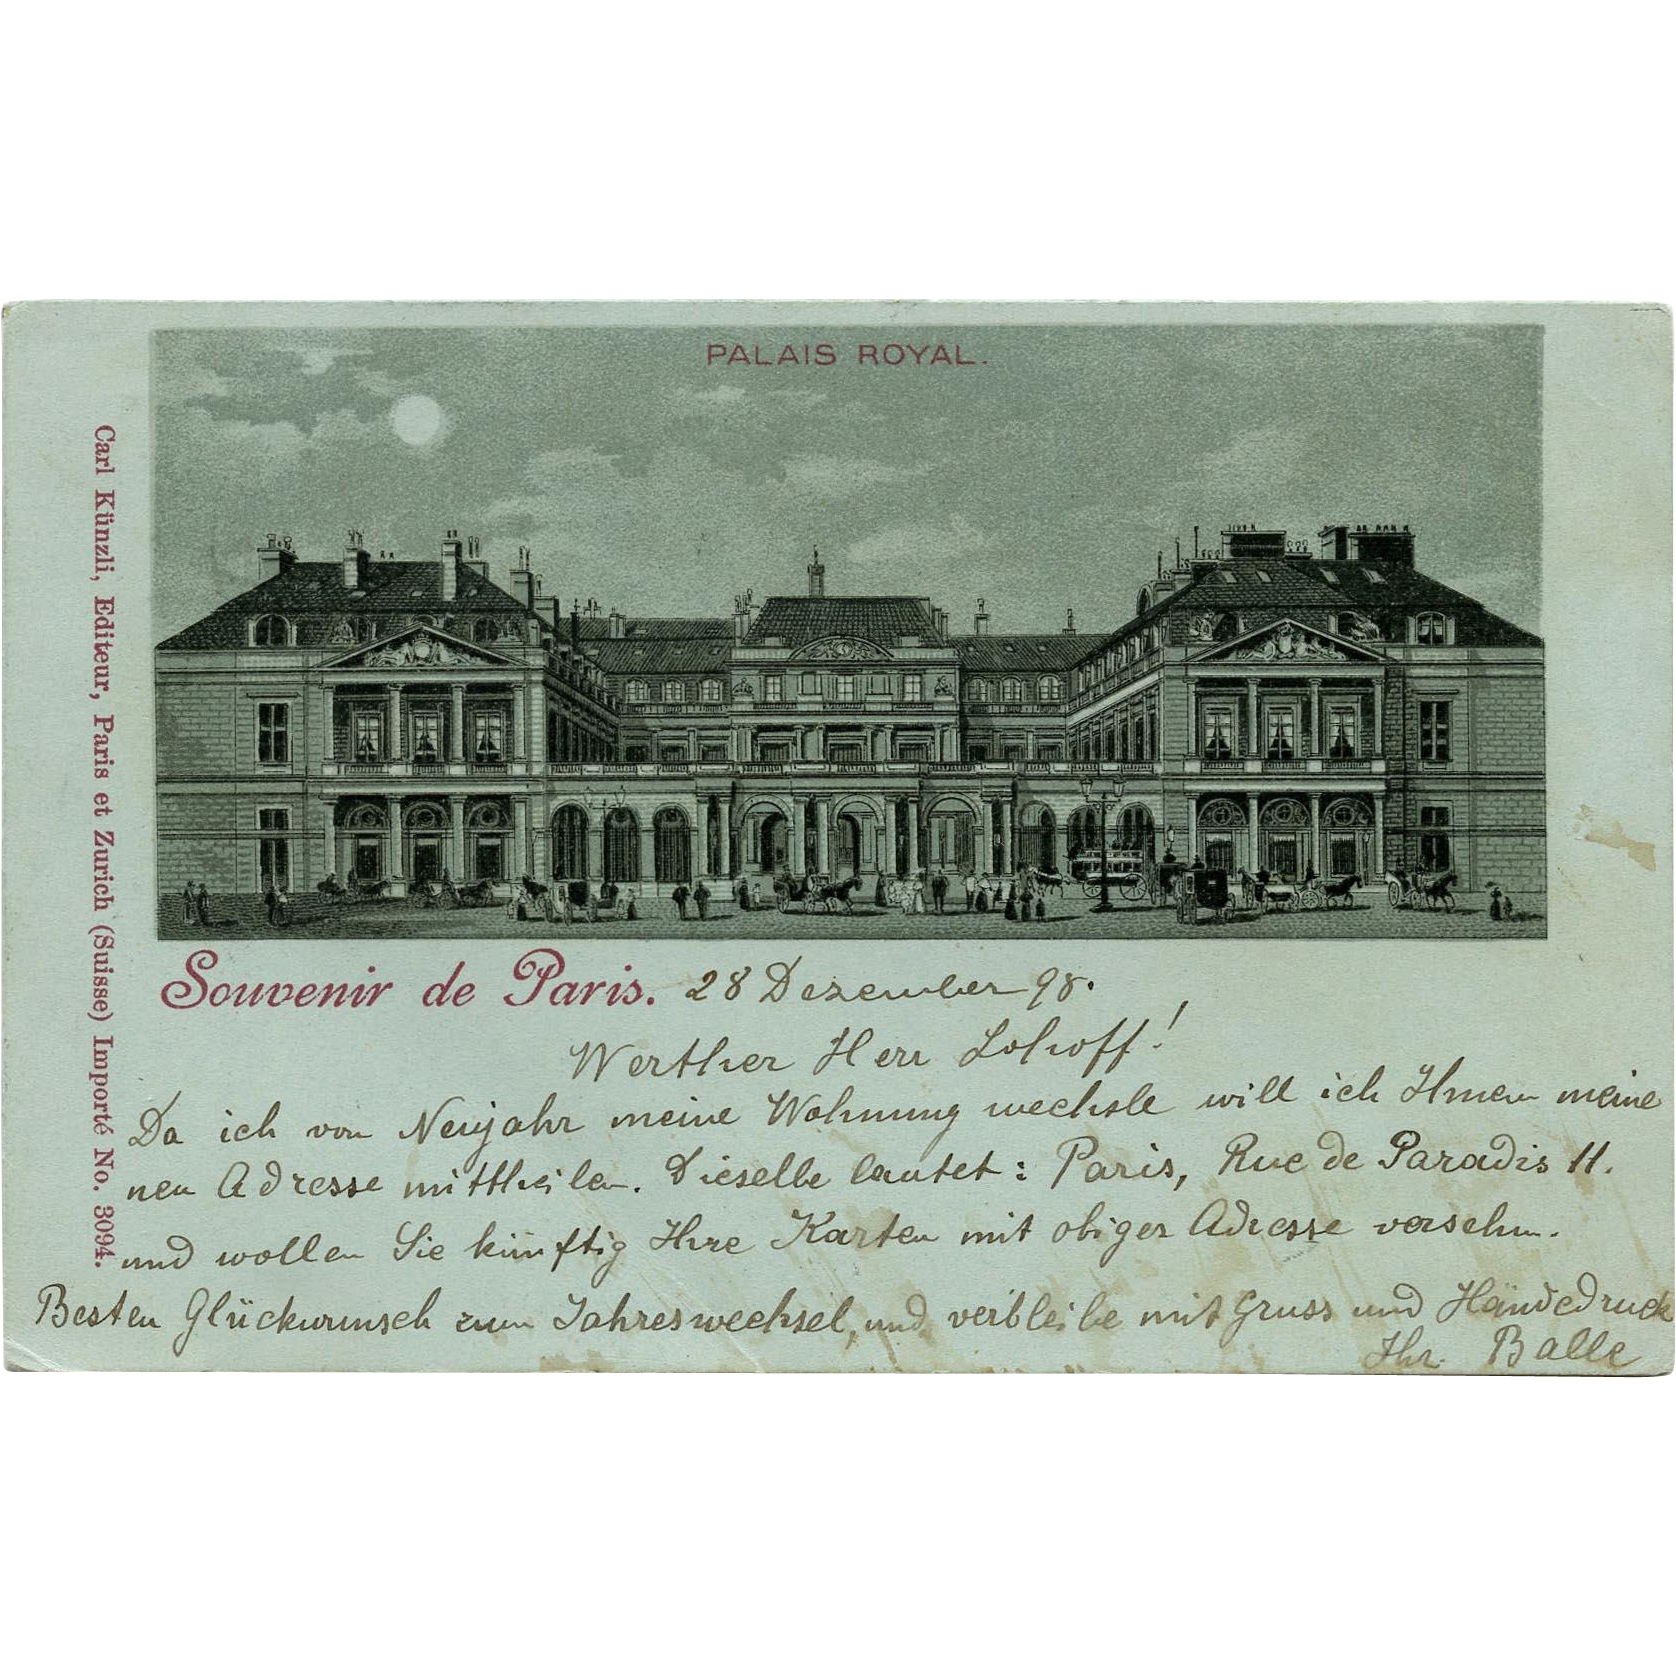 1898 Souvenir de Paris Postcard Palais Royal Illustration